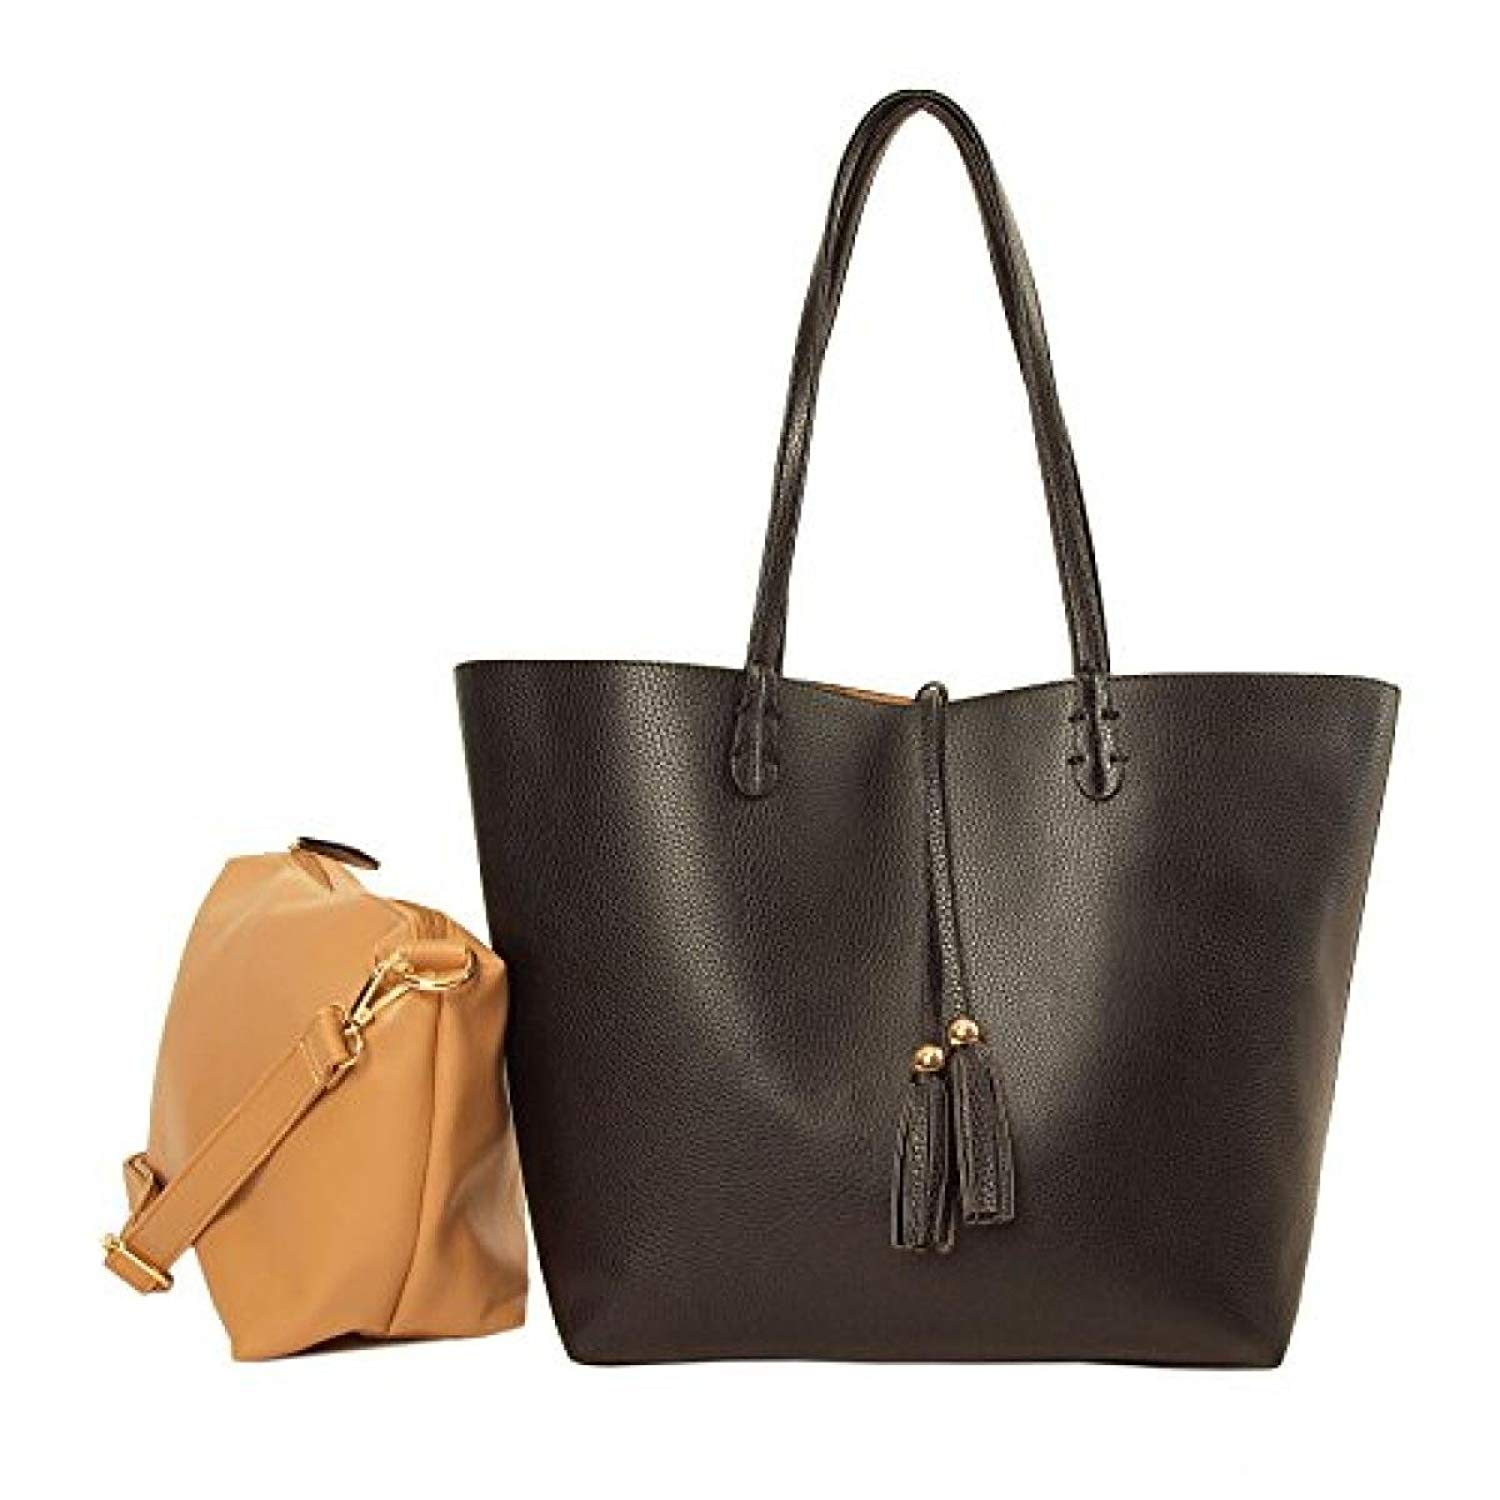 666b9e53b5b6 Get Quotations · Imoshion Women s Large Reversibile Genuine Faux Leather Bag -In-A-Bag Tote Bag